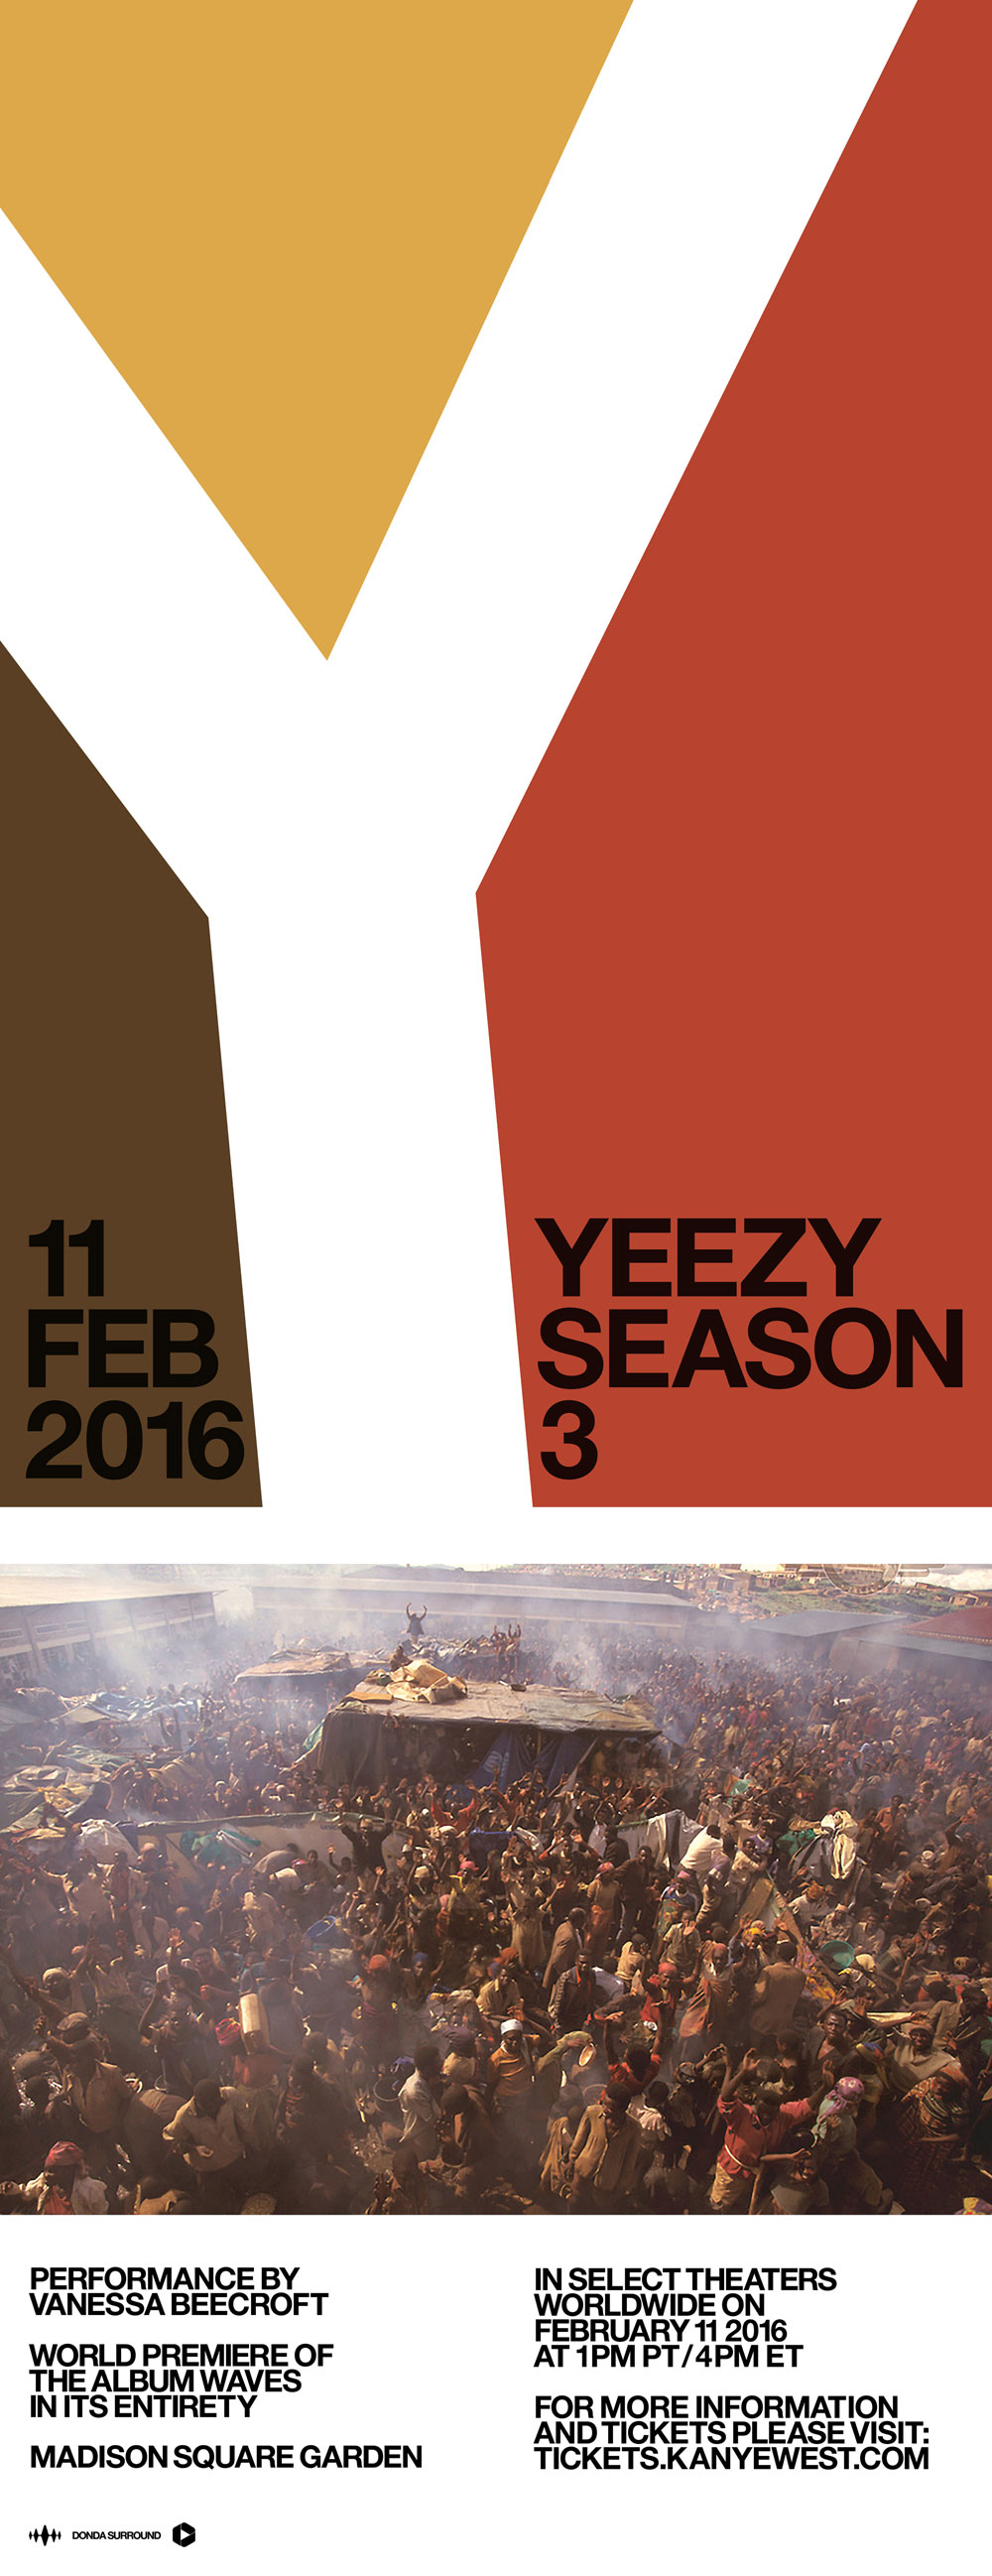 Kanye west may debut swish and yeezy season 3 at madison square garden hypebeast for Madison square garden kanye west